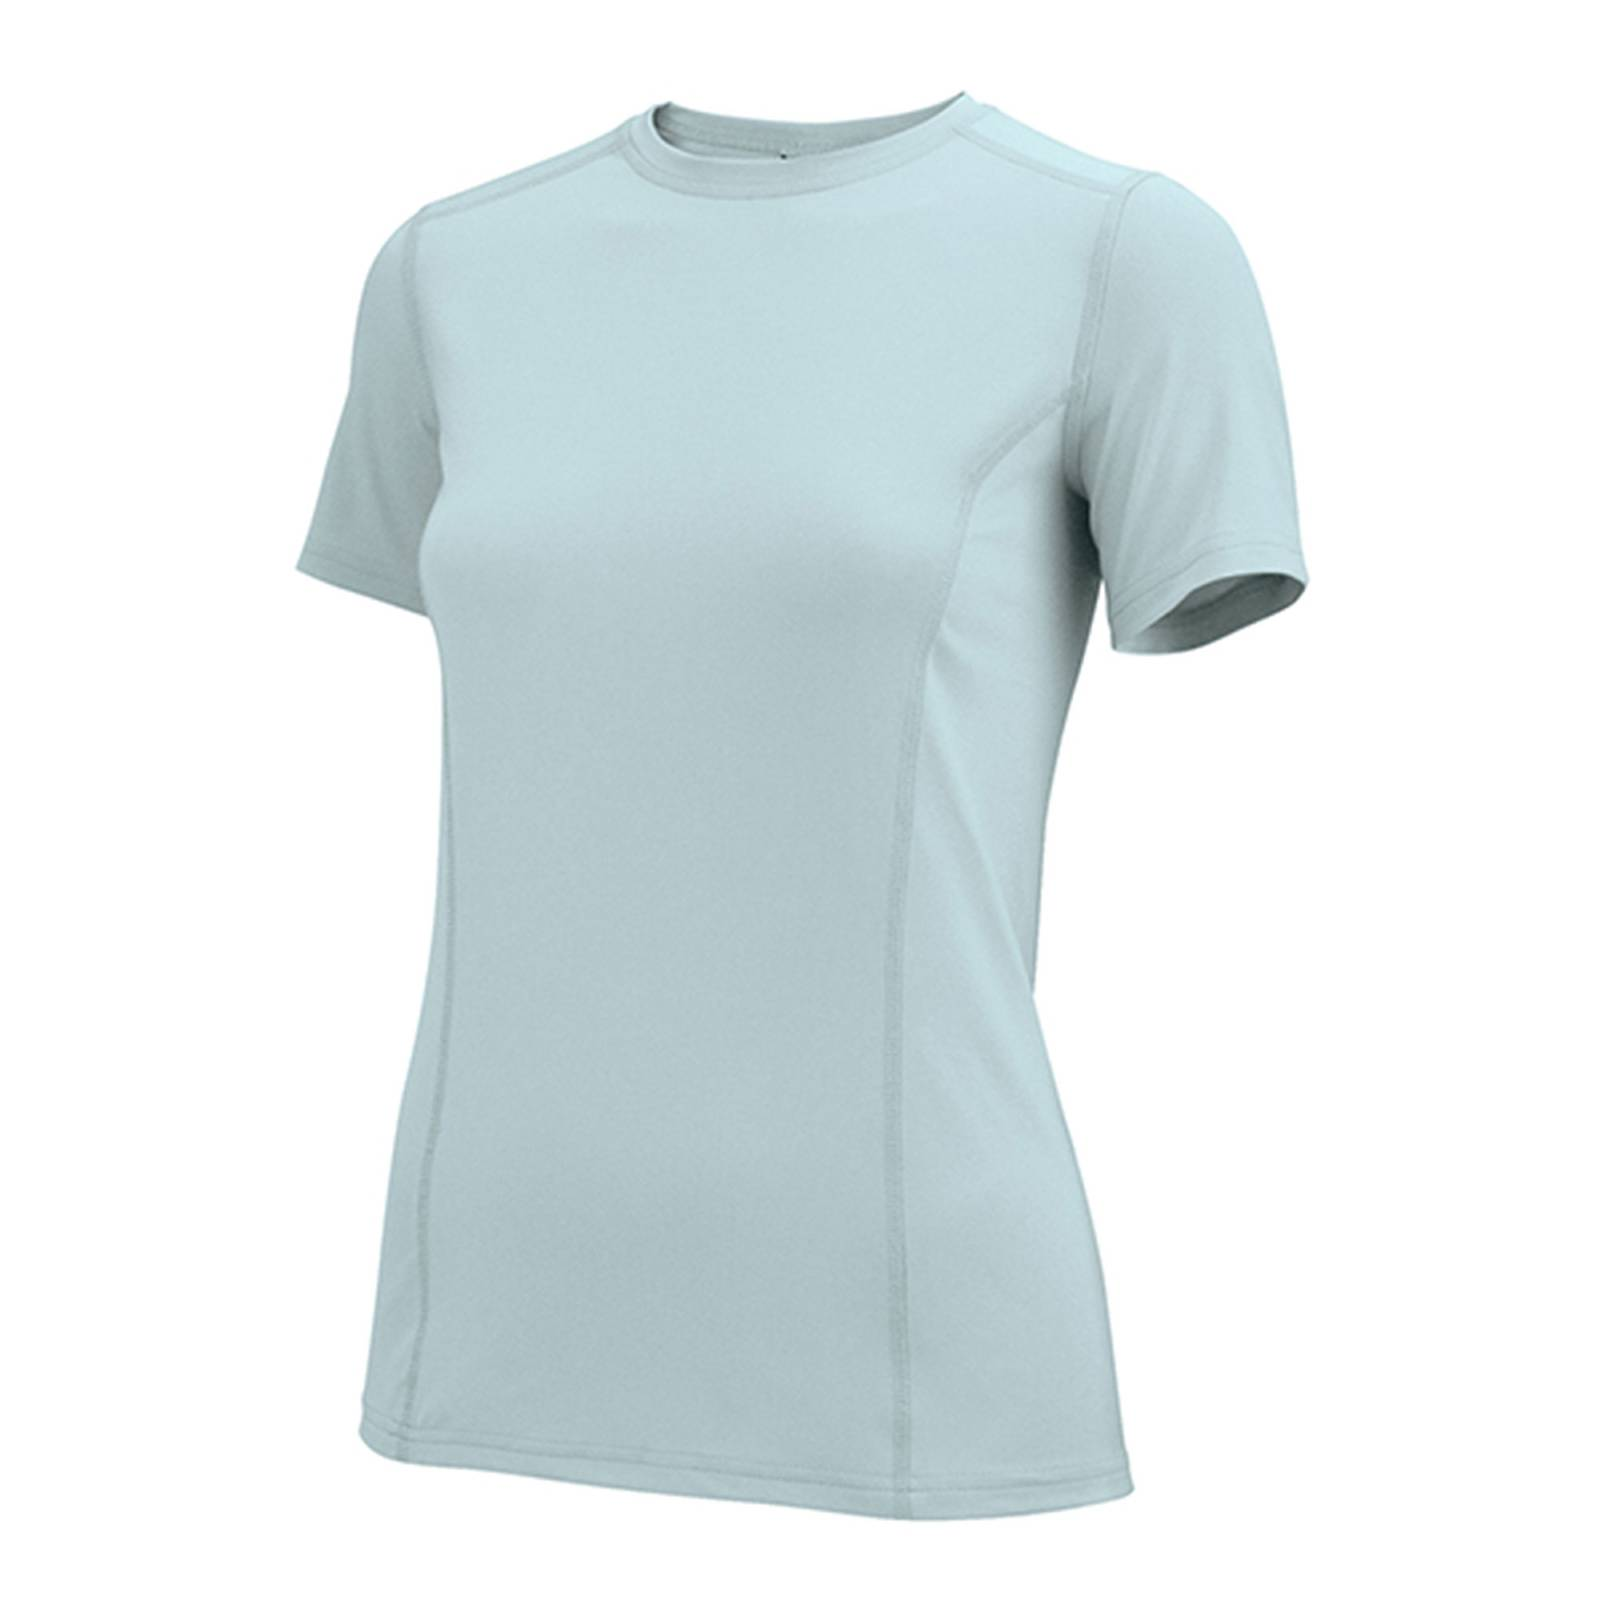 Outlet - Irideon Ladies Performance Silks Short Sleeve Riding Top, X-Large, Patina